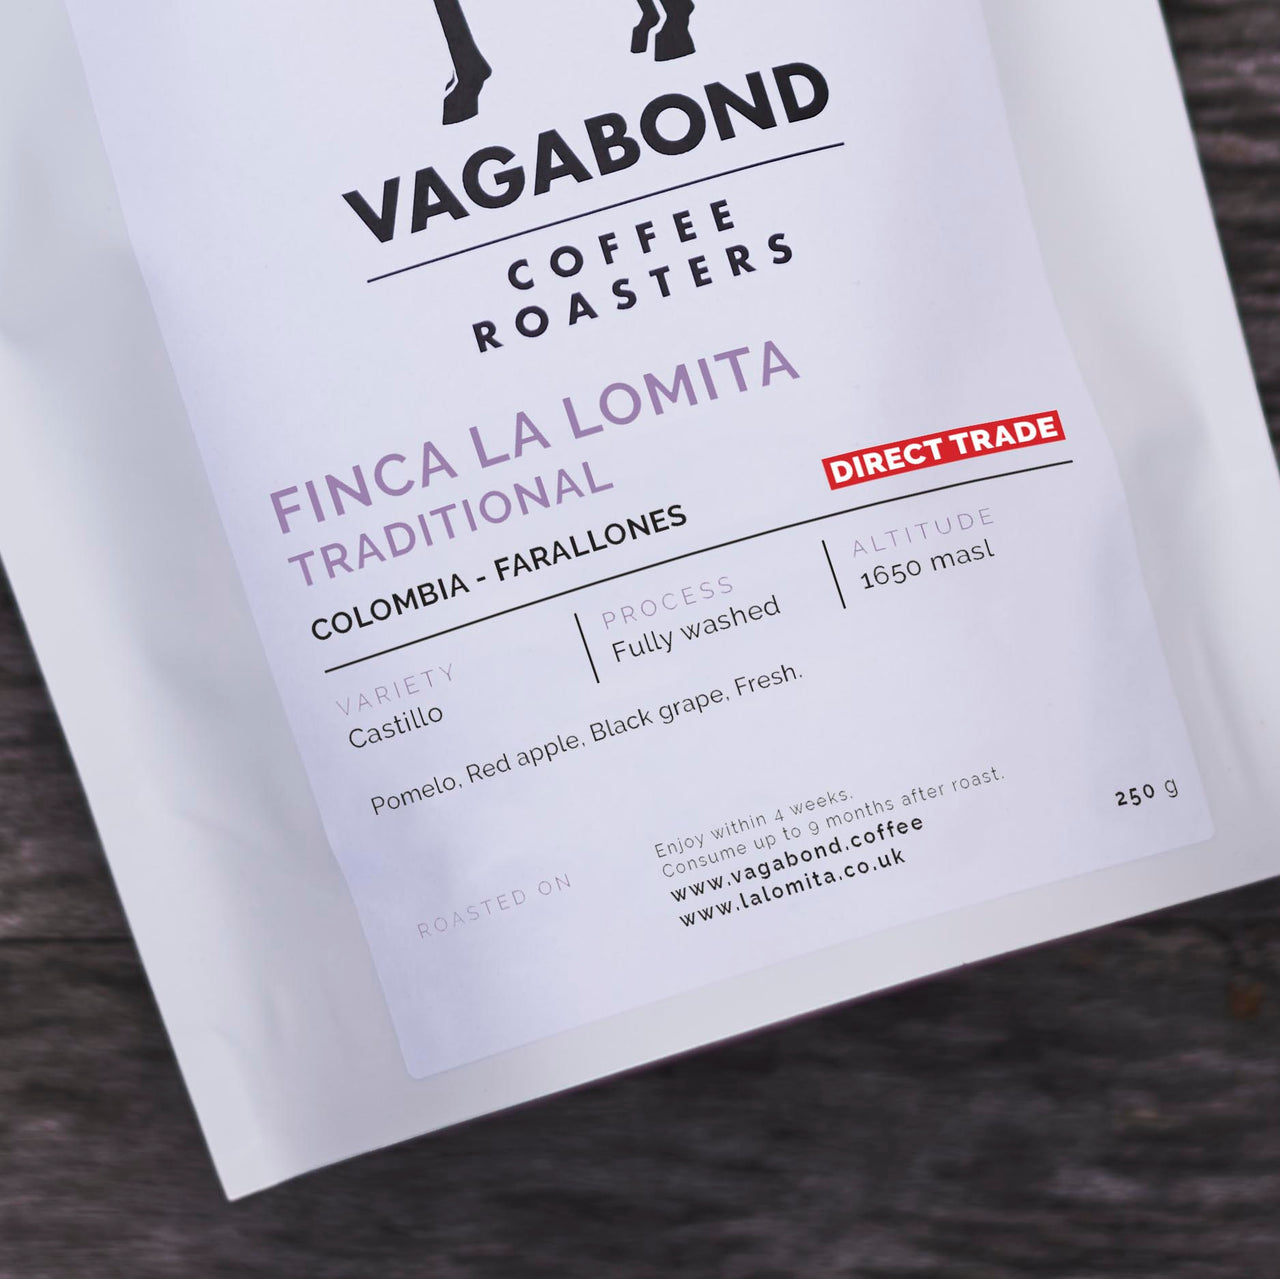 Finca La Lomita - Traditional | Colombia | Direct Trade